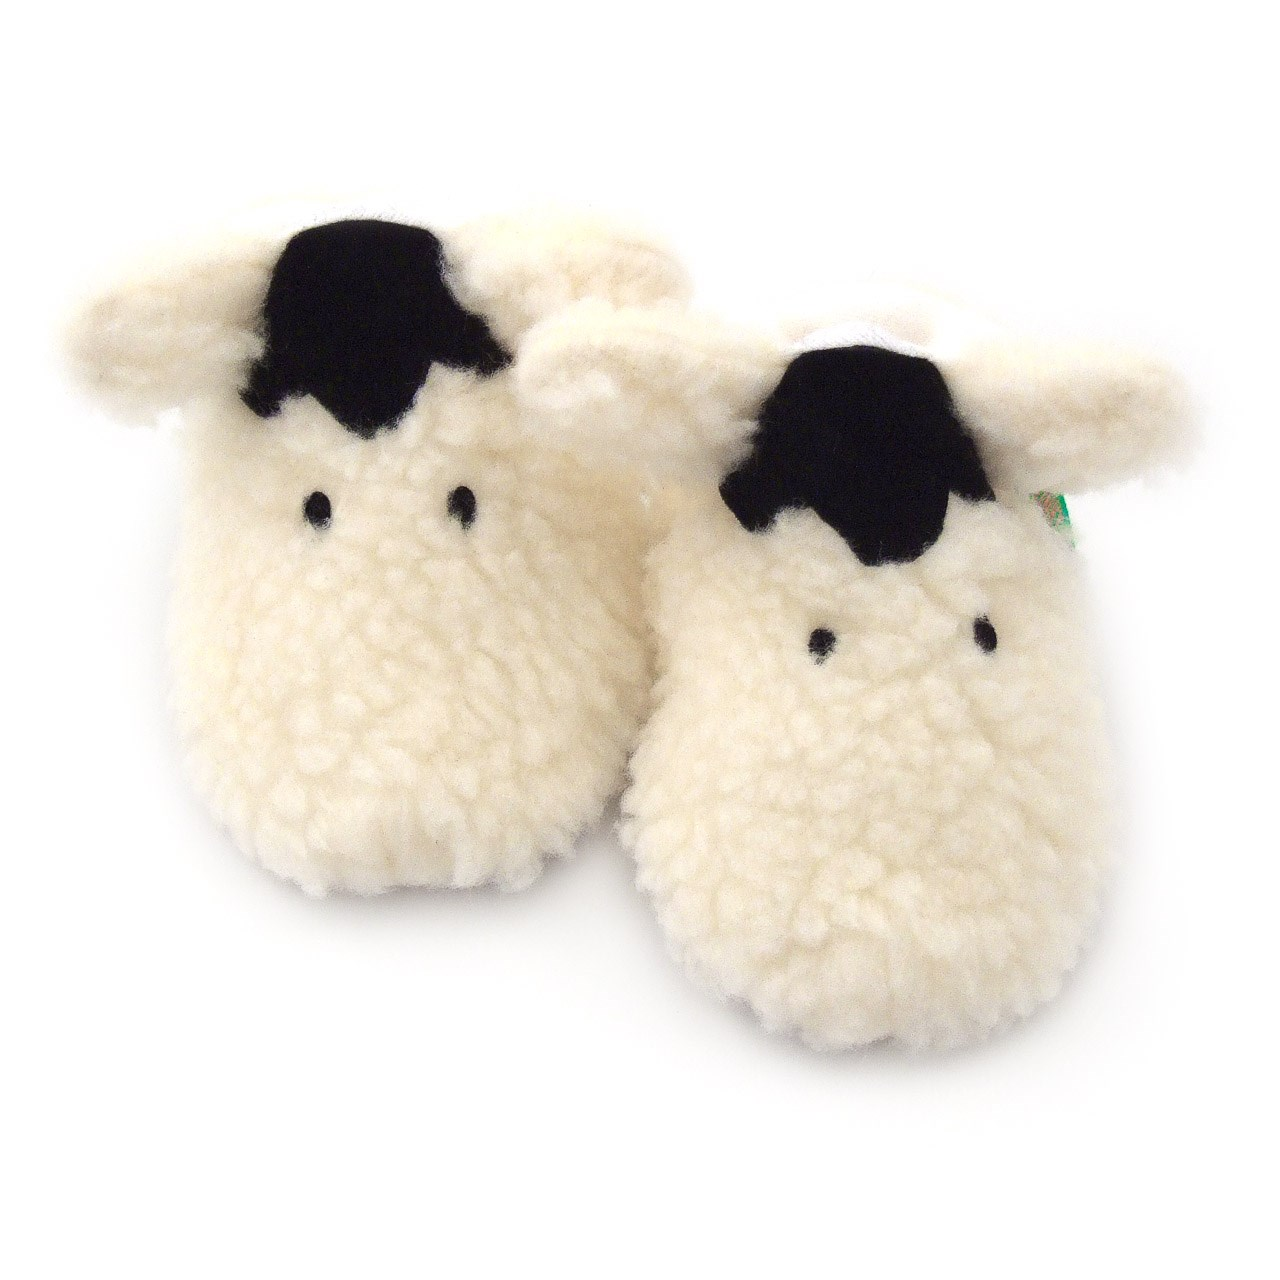 Soft Baby Shoes - Shaggy Sheep